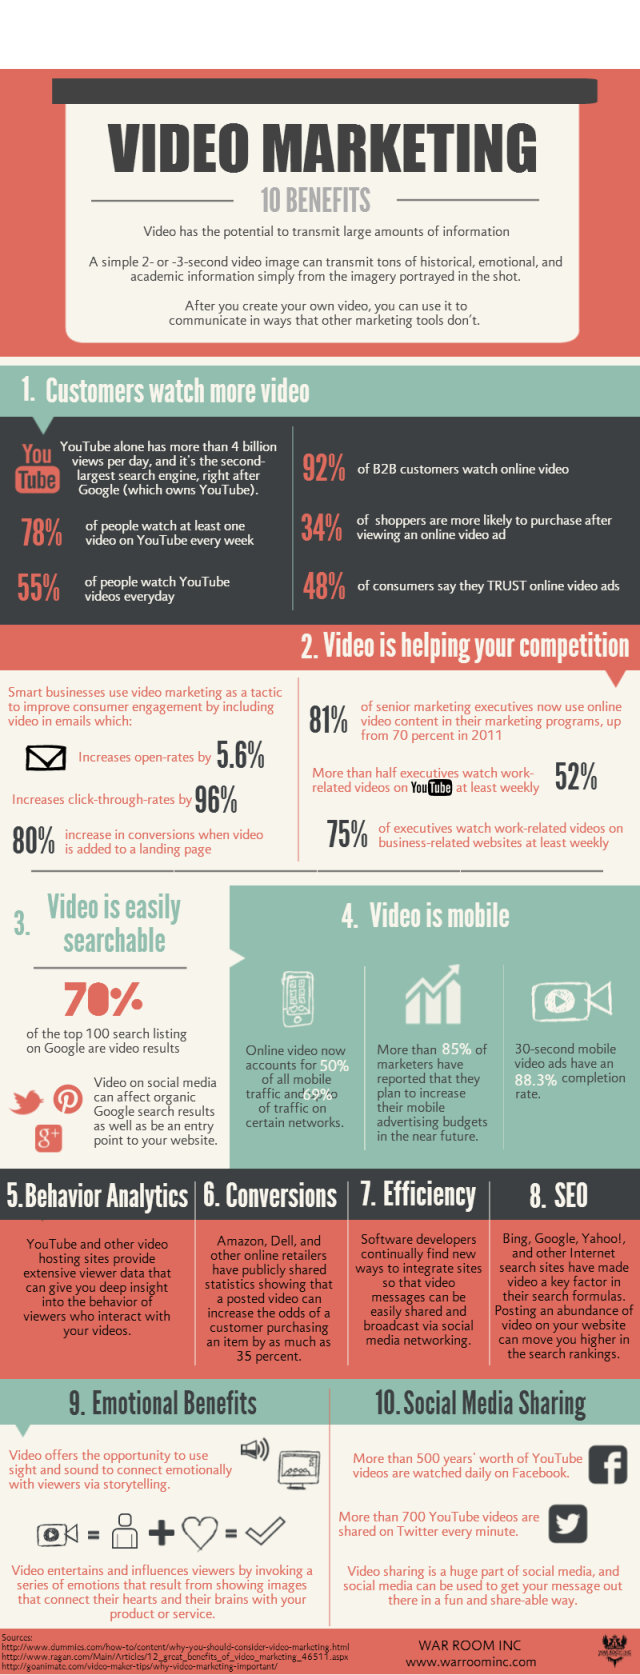 War Room Inc reveal the 10 benefits of Video Marketing VideoPak Video Brochure